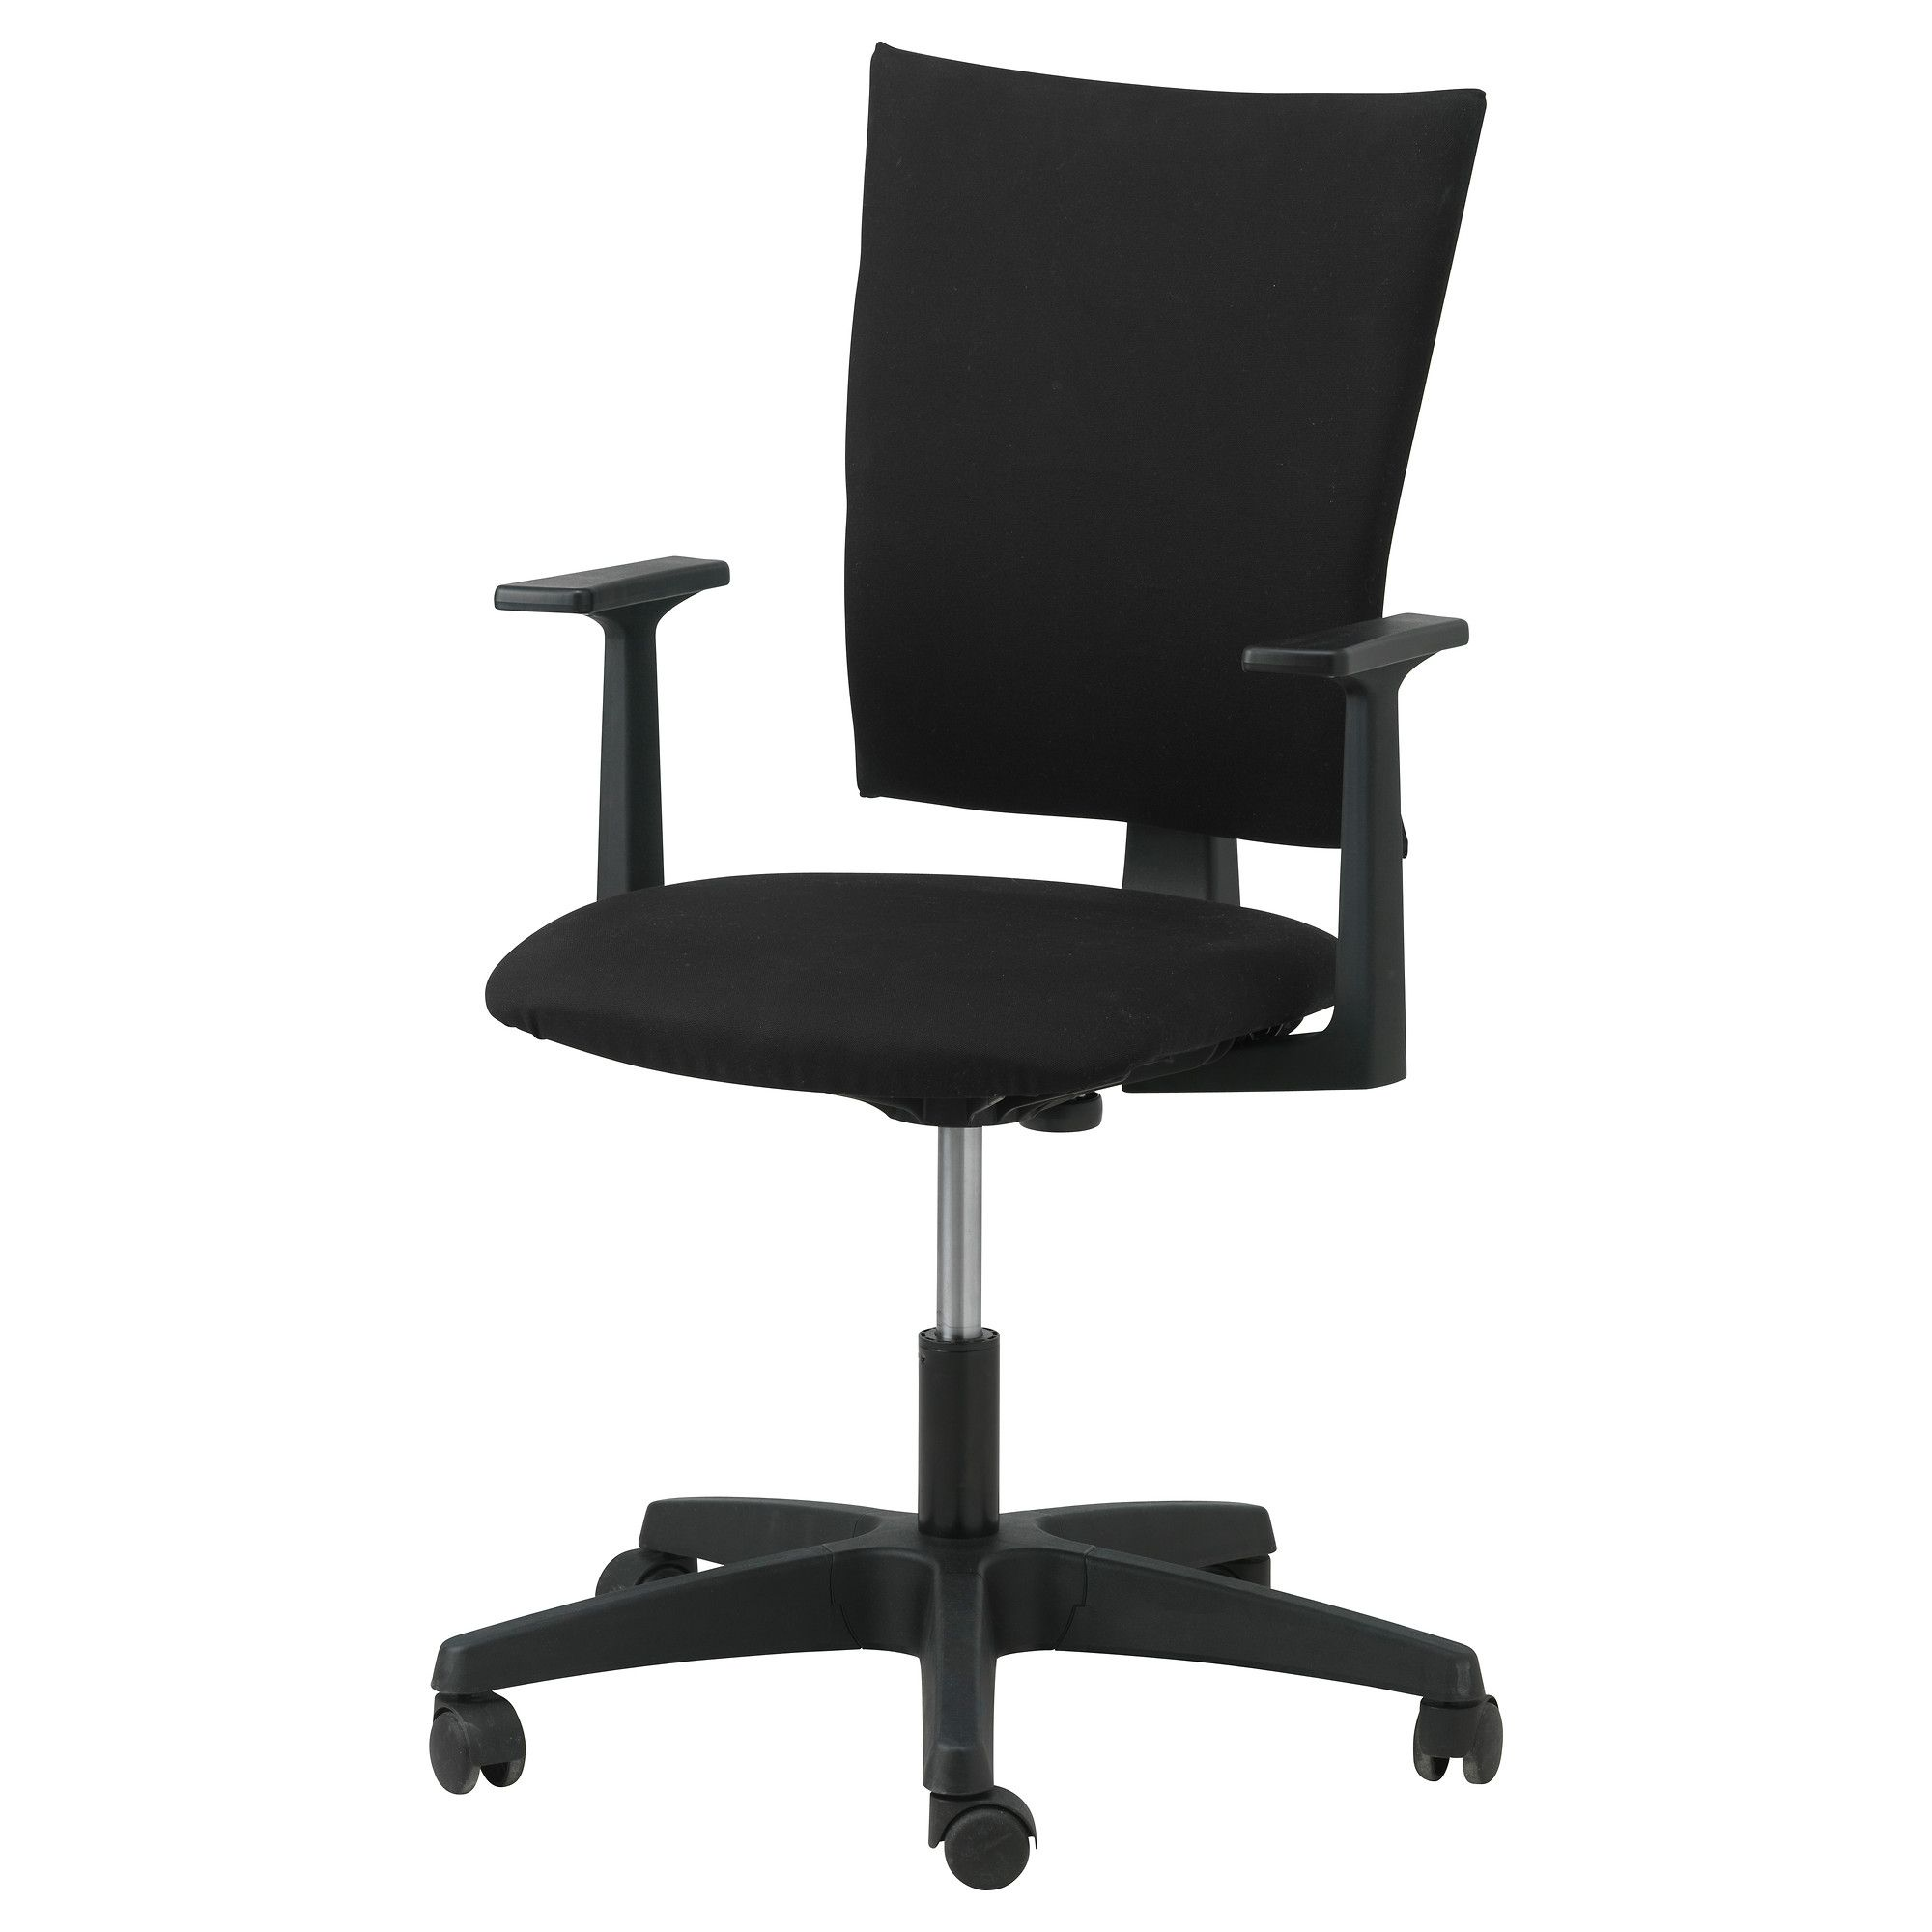 Cute Swivel Chair Klemens Swivel Chair Alme Black Ikea Home Office Silla